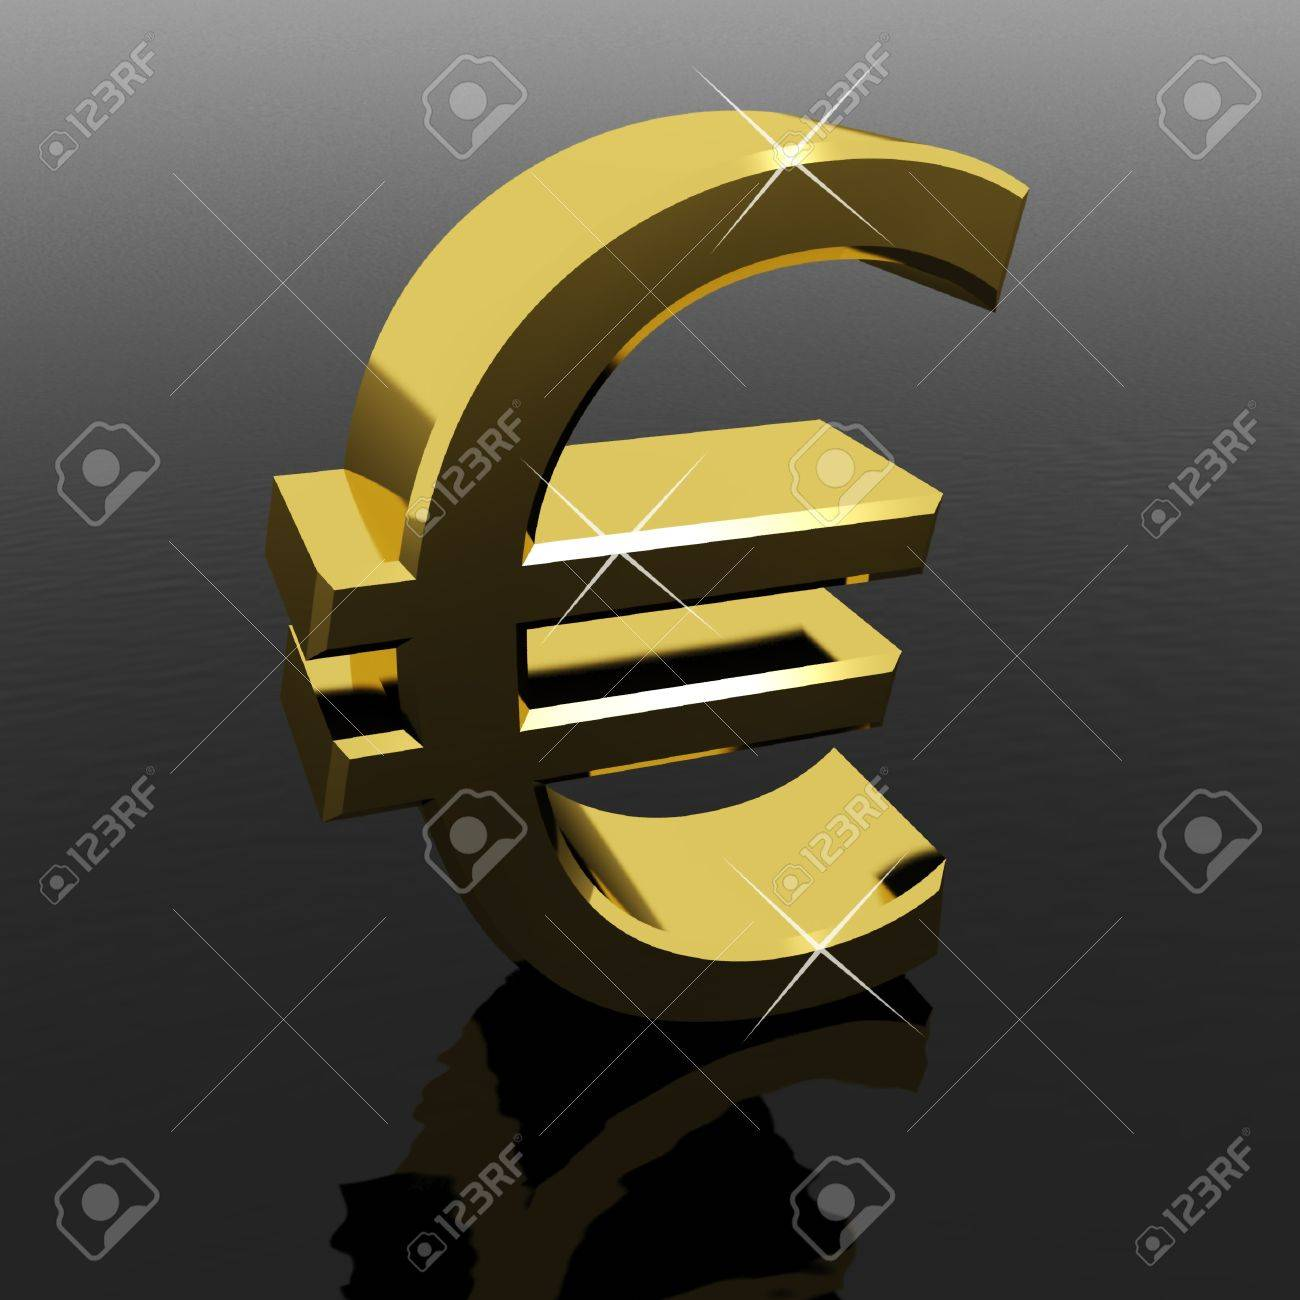 Gold Euro Sign As Symbol For Money Or Wealth Stock Photo - 11725335